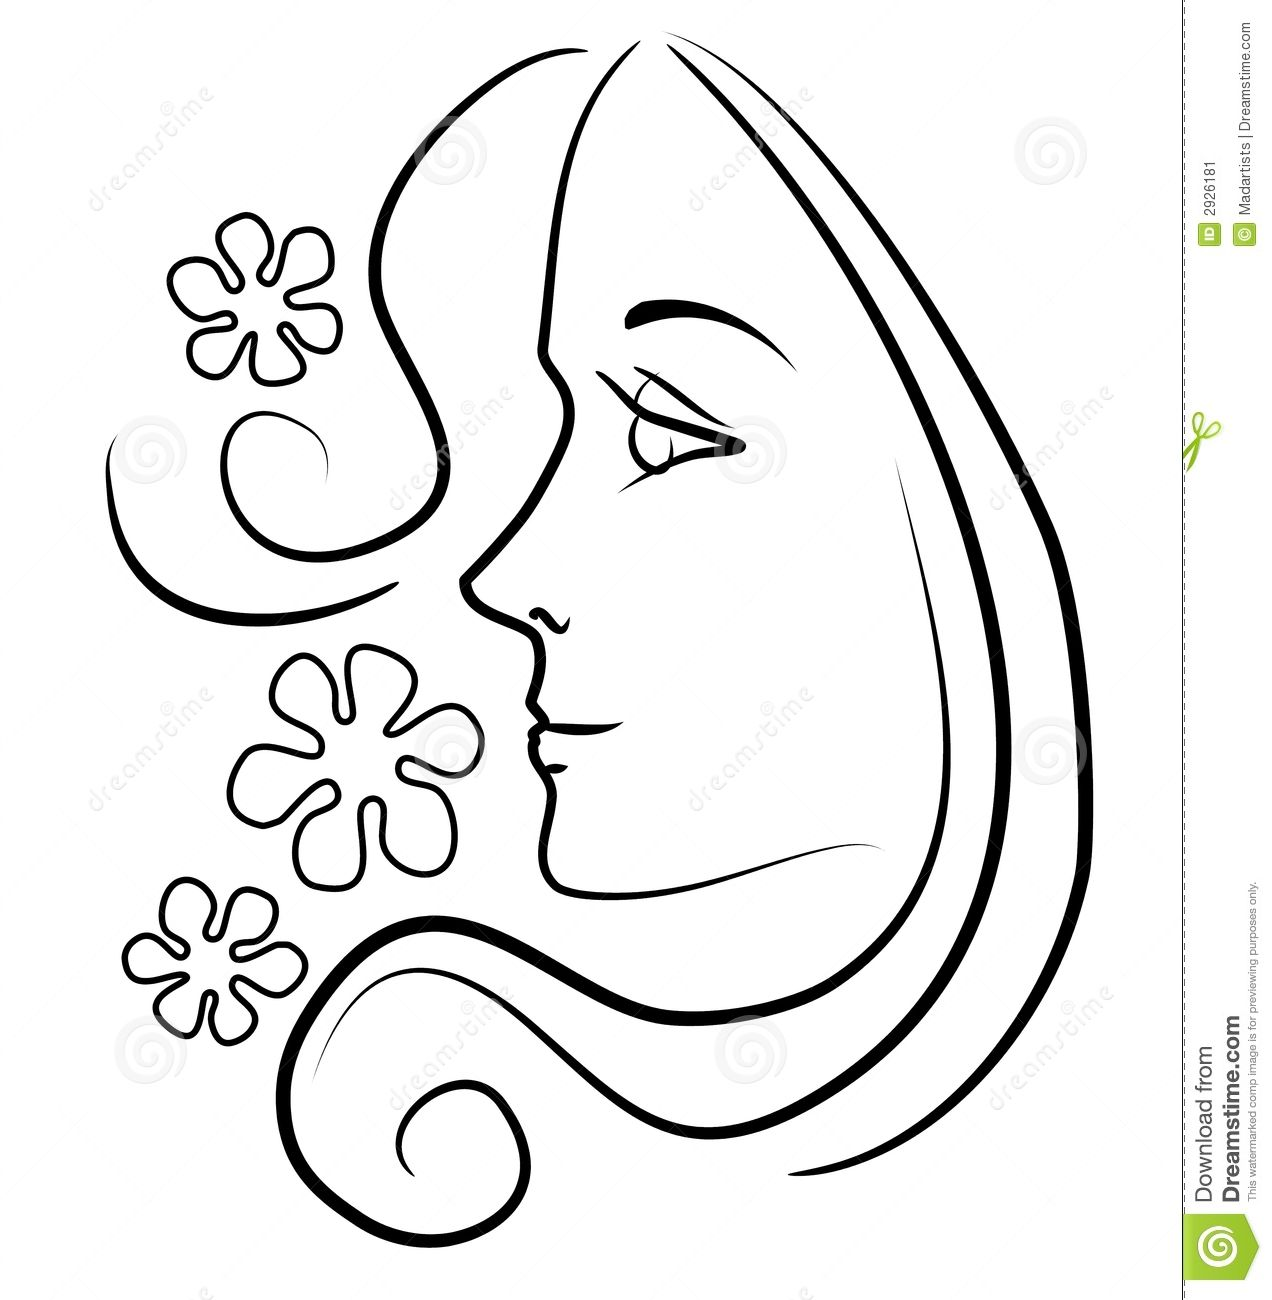 Line Drawing Of Female Face : Clip art of a girl face outline illustration